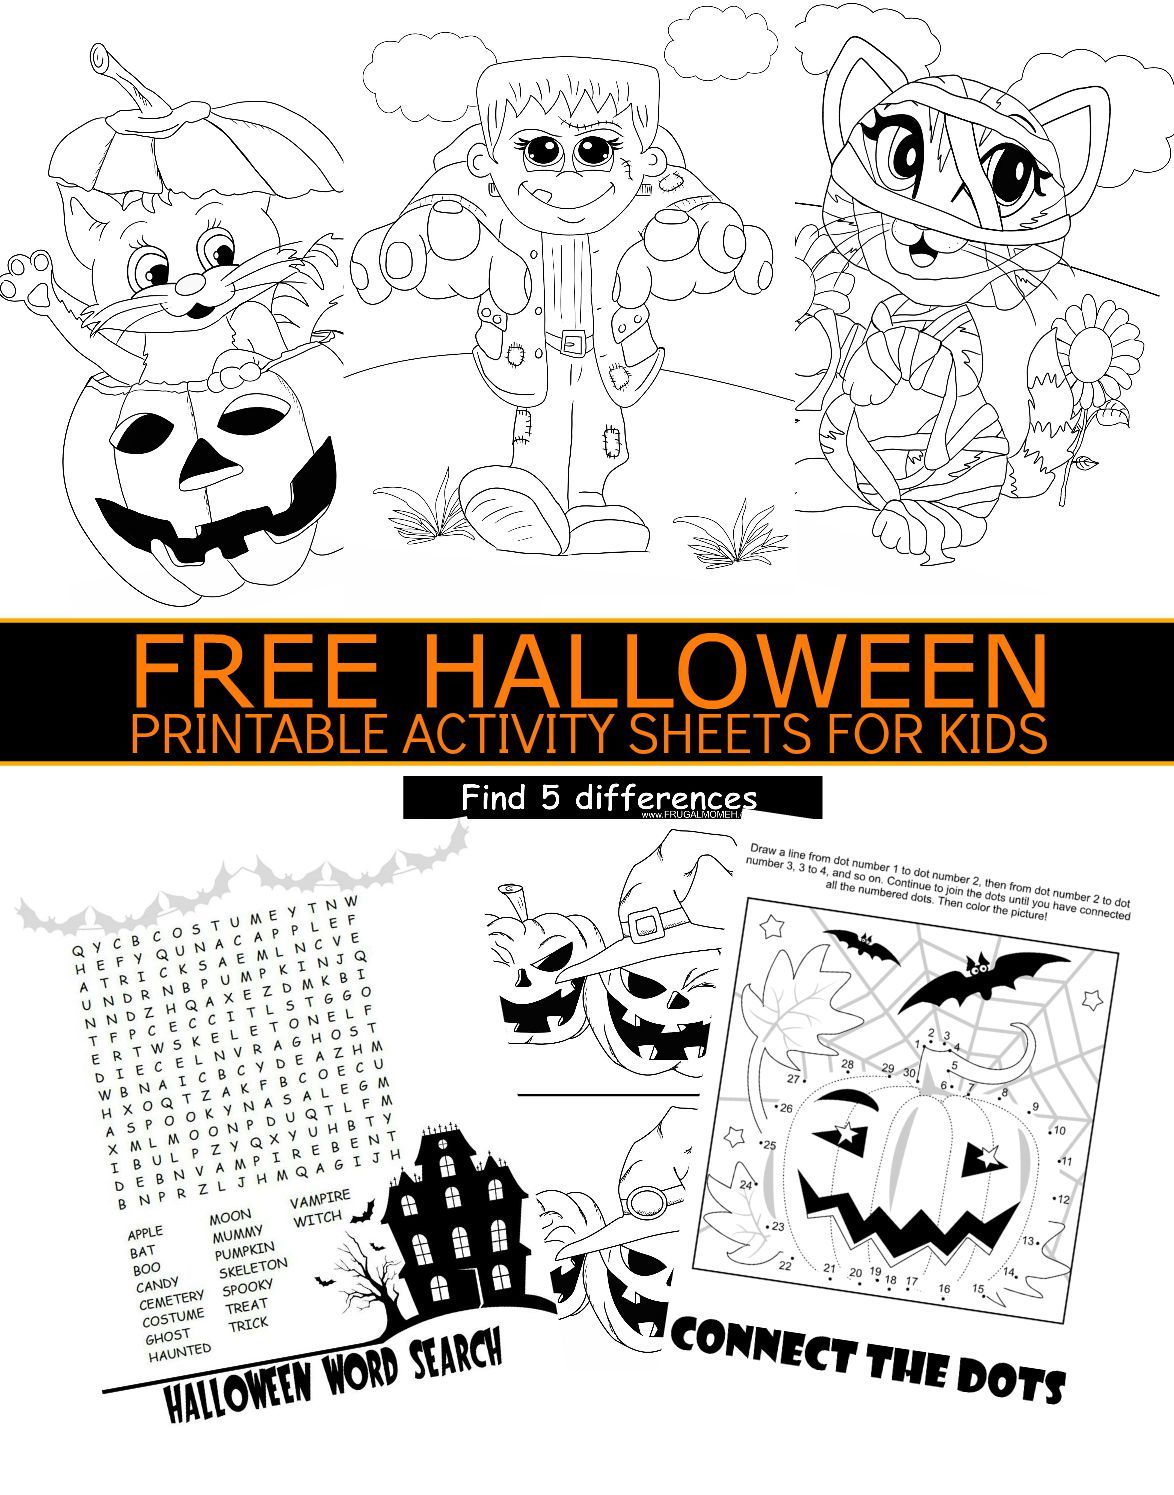 Breathtaking image in halloween printable activities